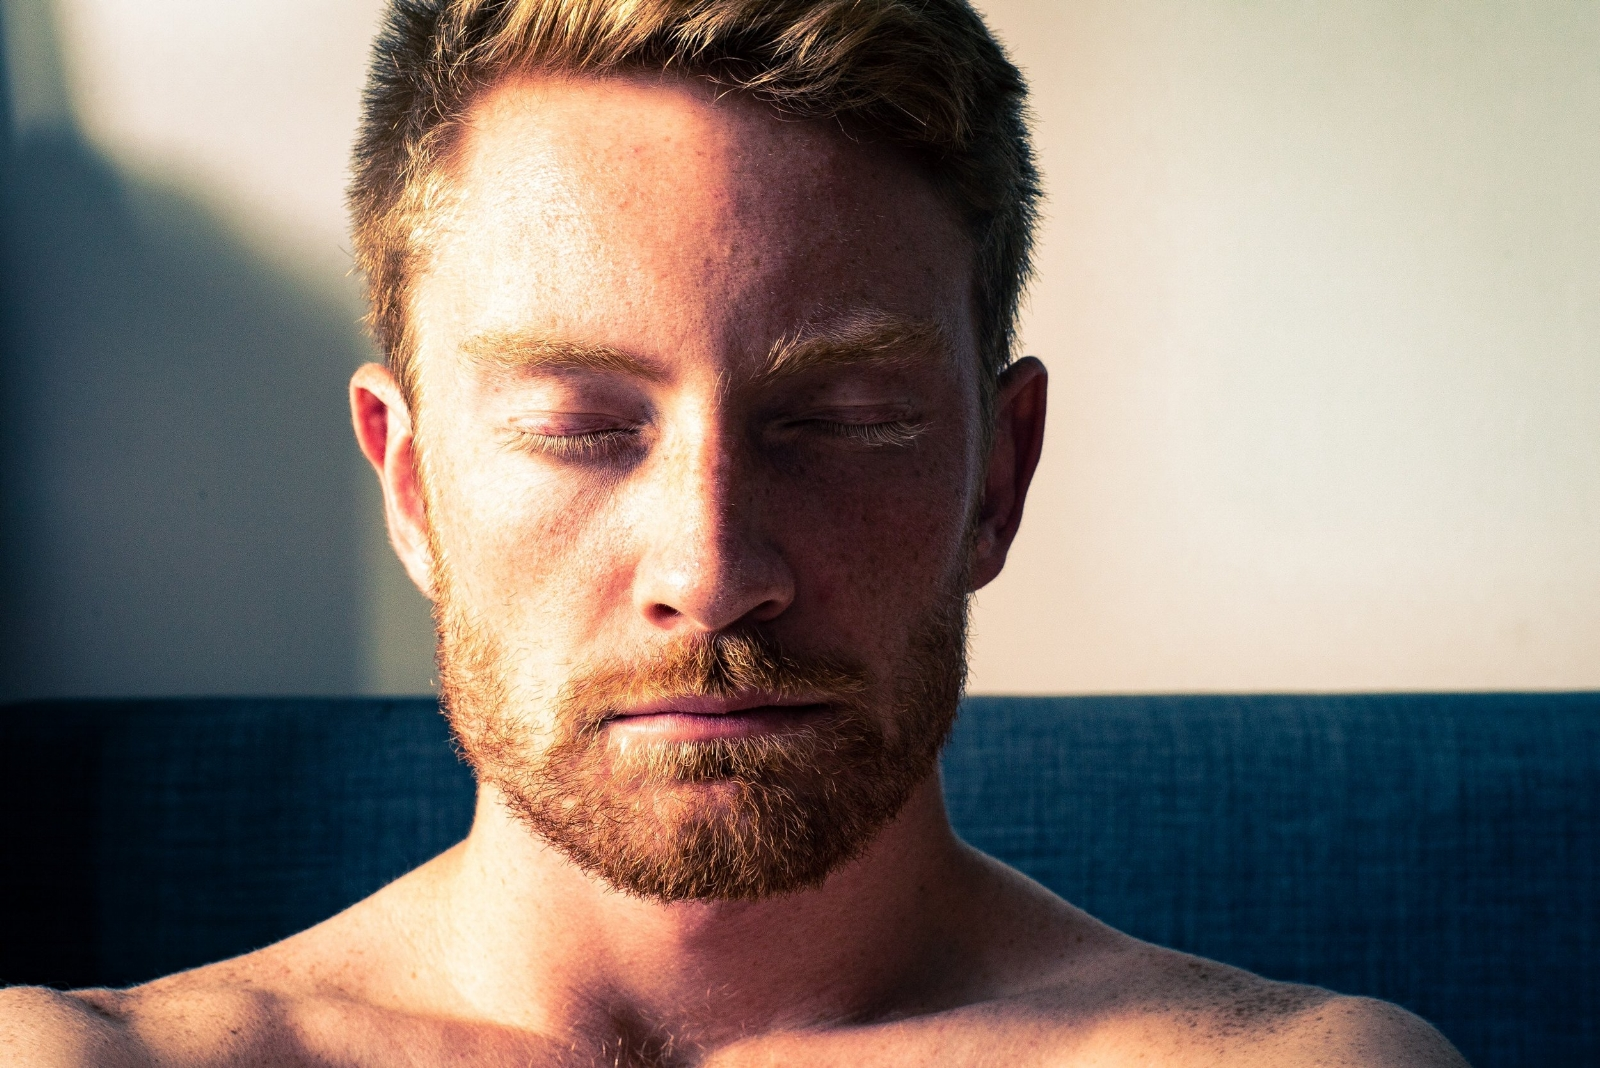 Man meditating with closed eyes_phot by mitchell griest.jpg